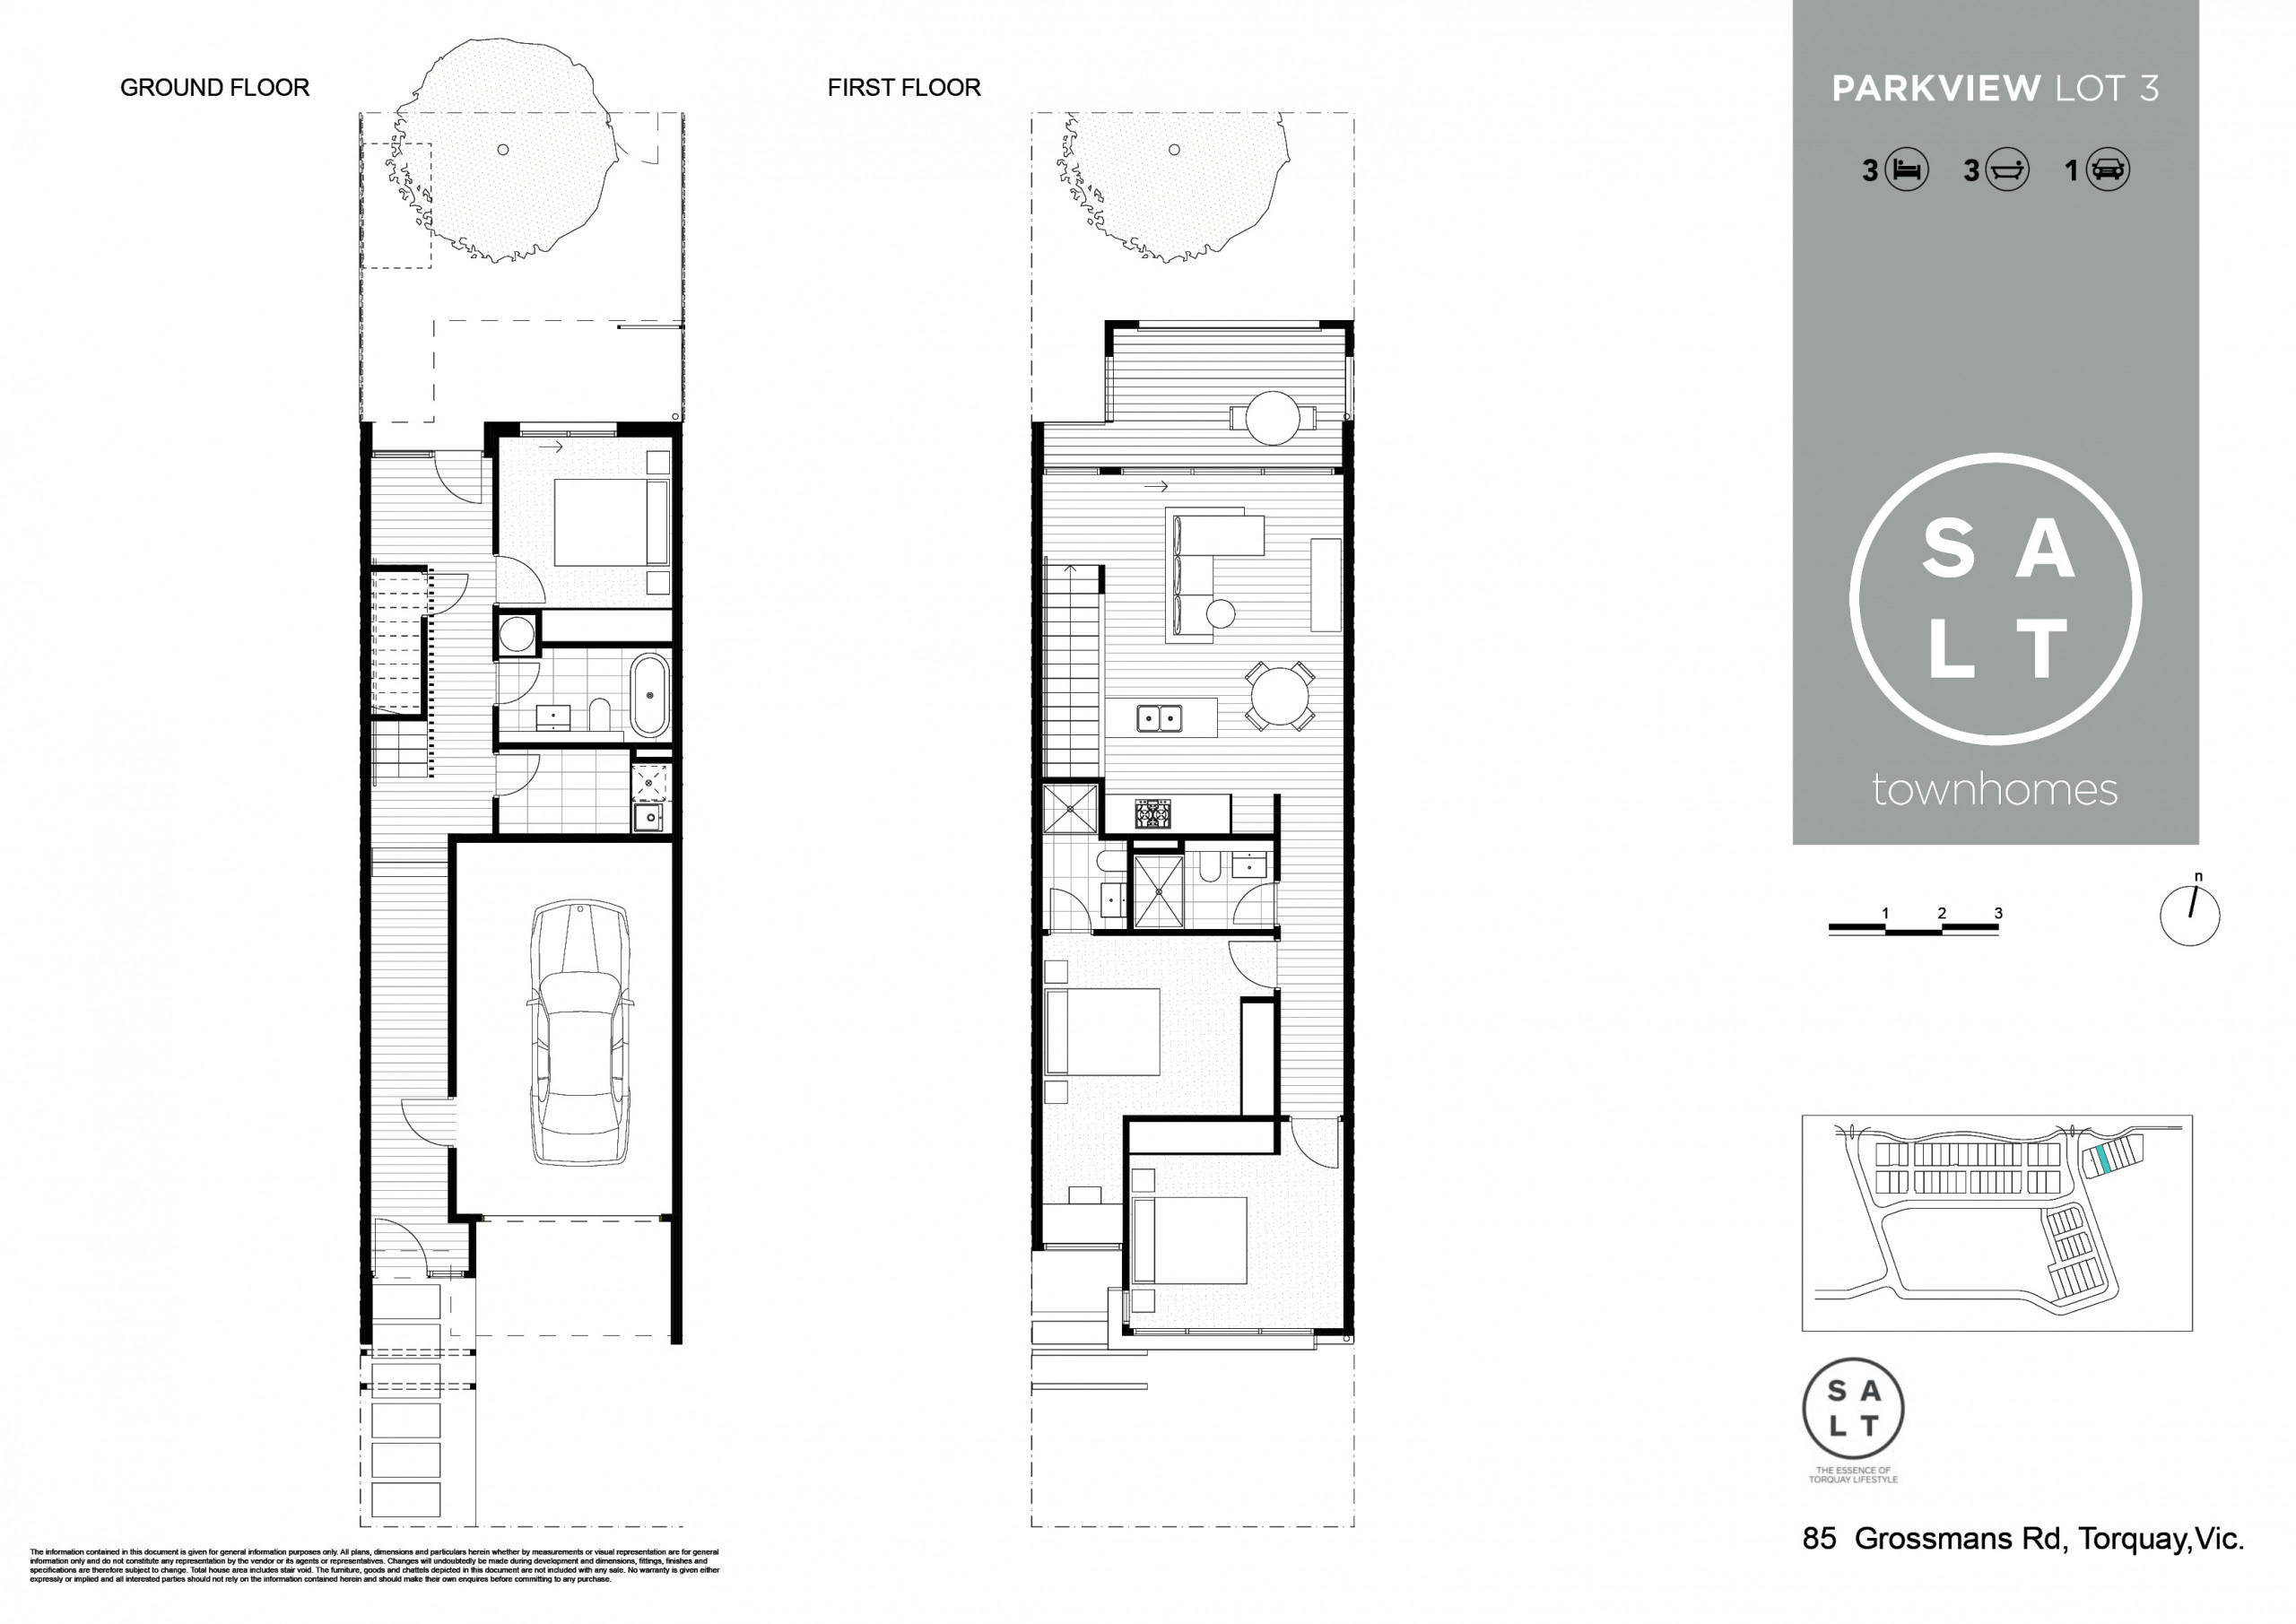 SALT Floor Plan Gardenview LOT 3